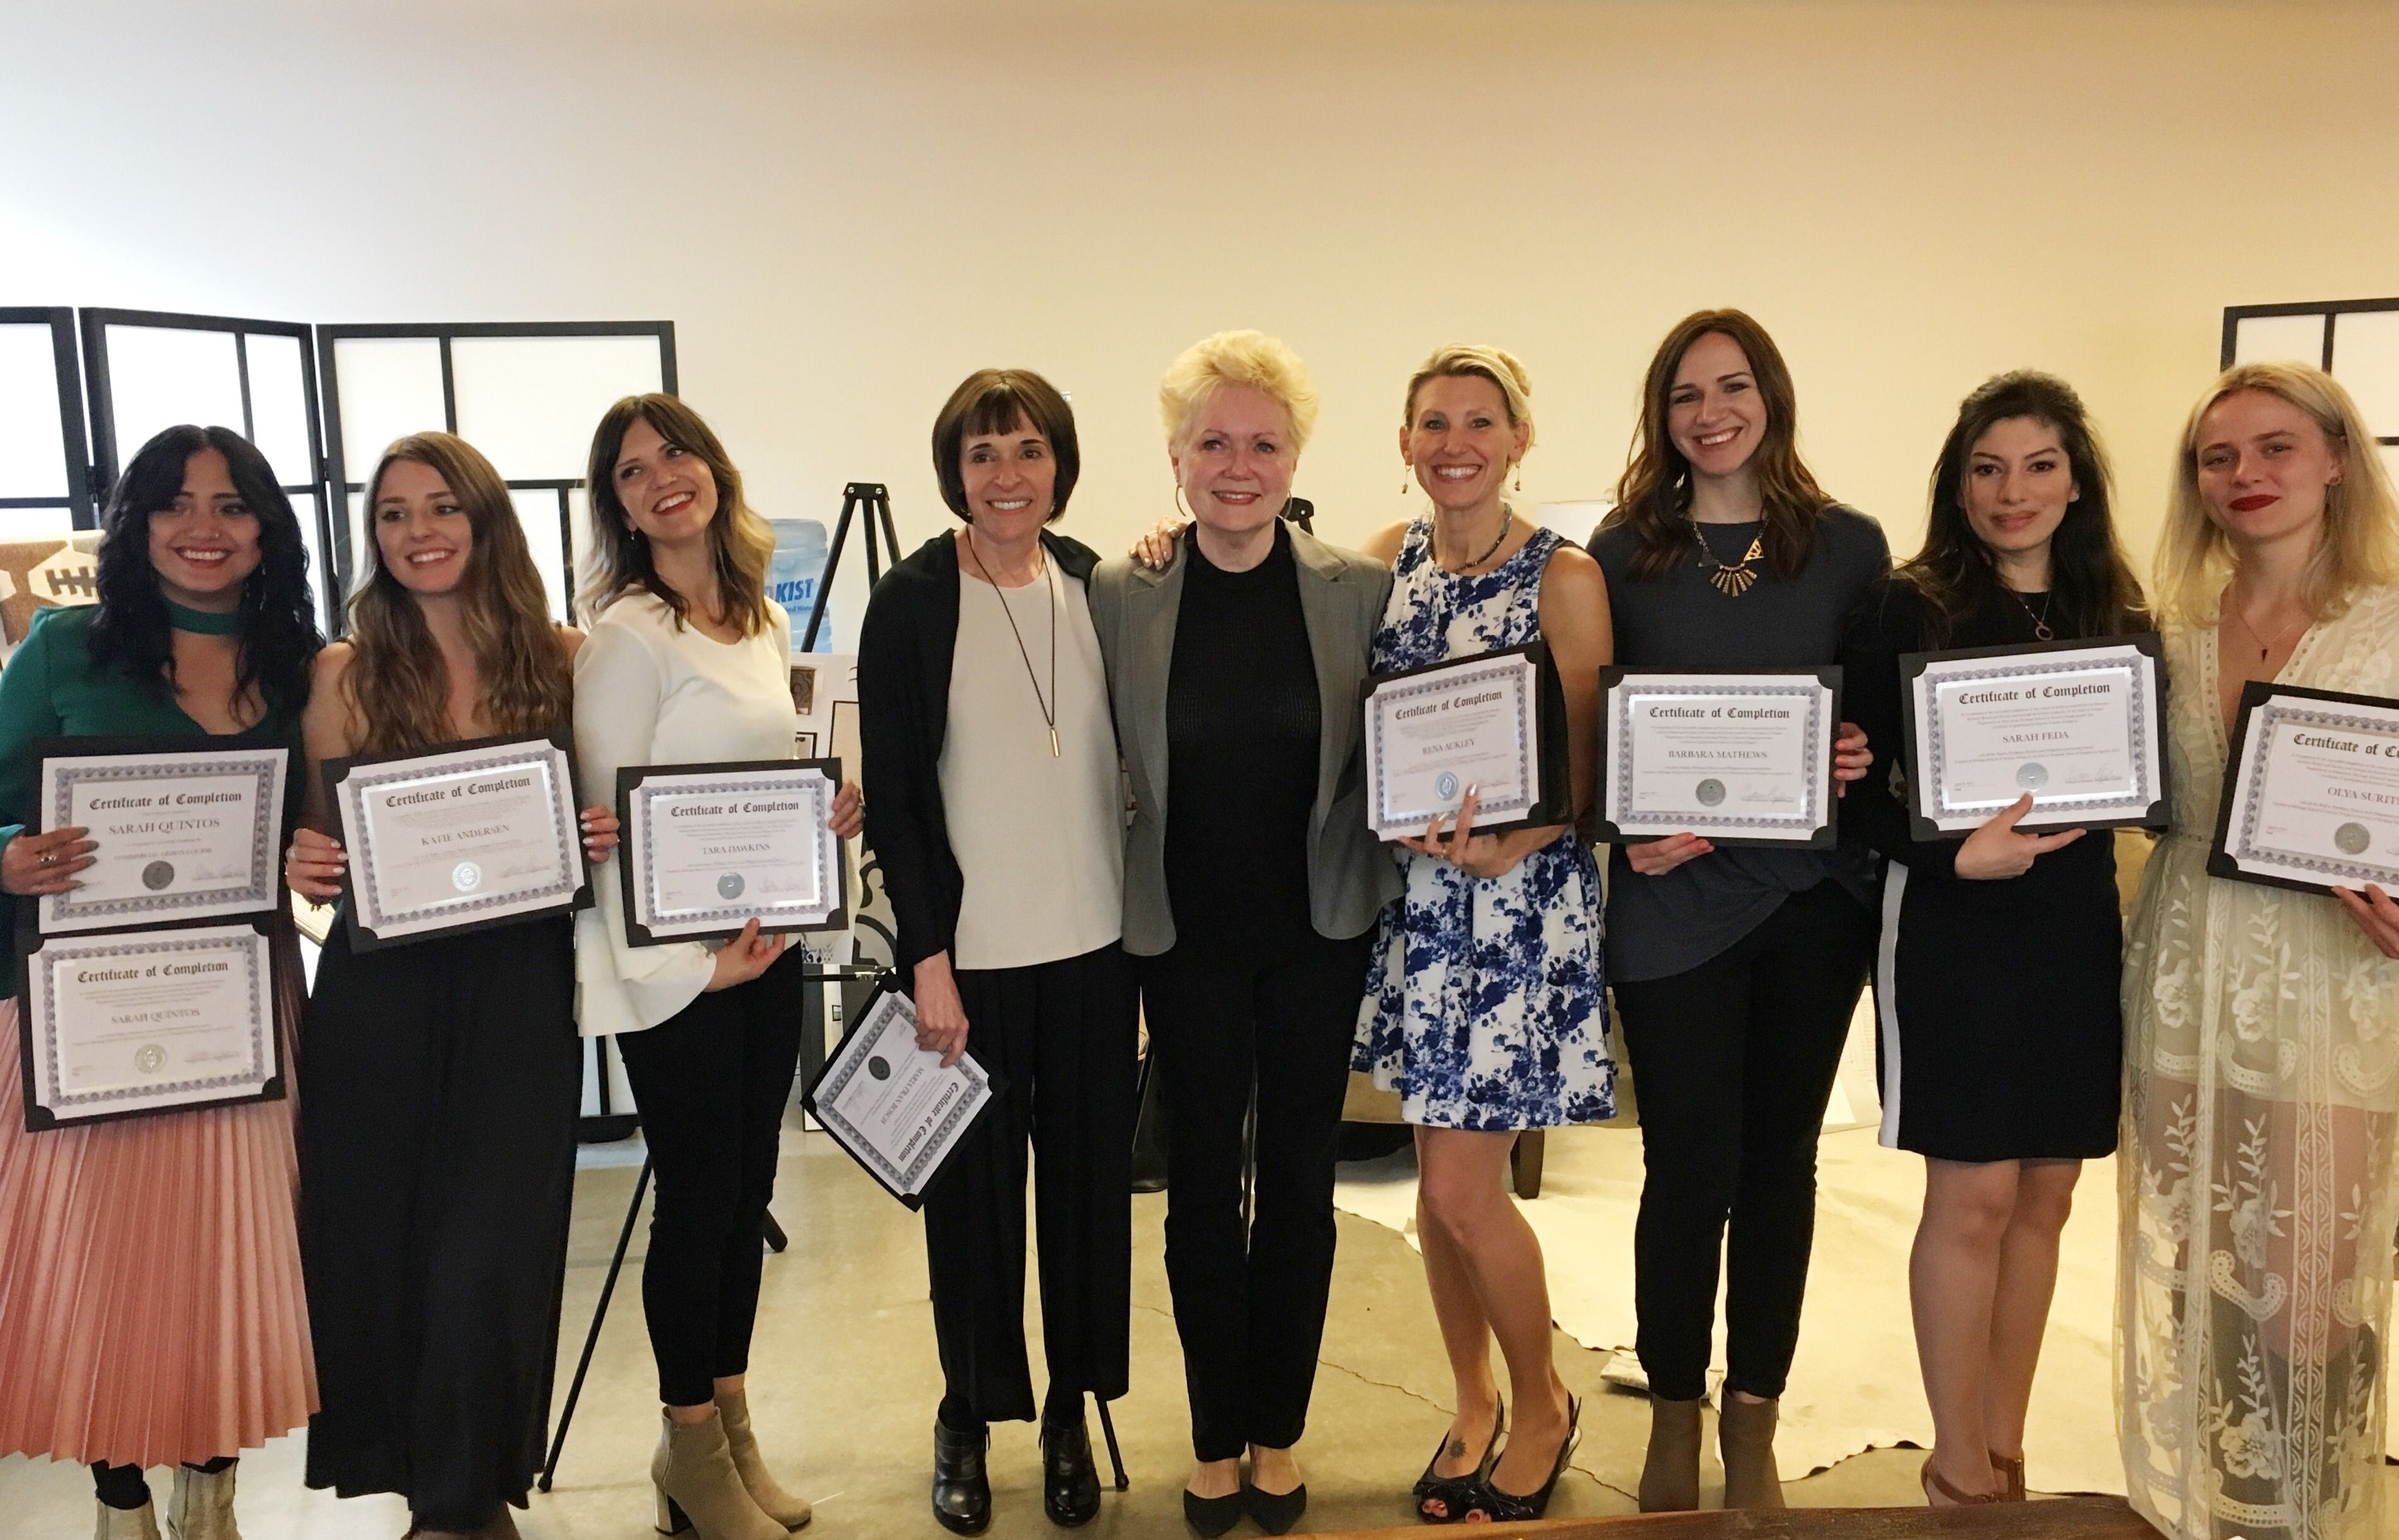 Heritage School Of Interior Design Executive Program Graduates | Heritage  School Of Interior Design Gallery | Pinterest | Interior Design, Interiors  And ...